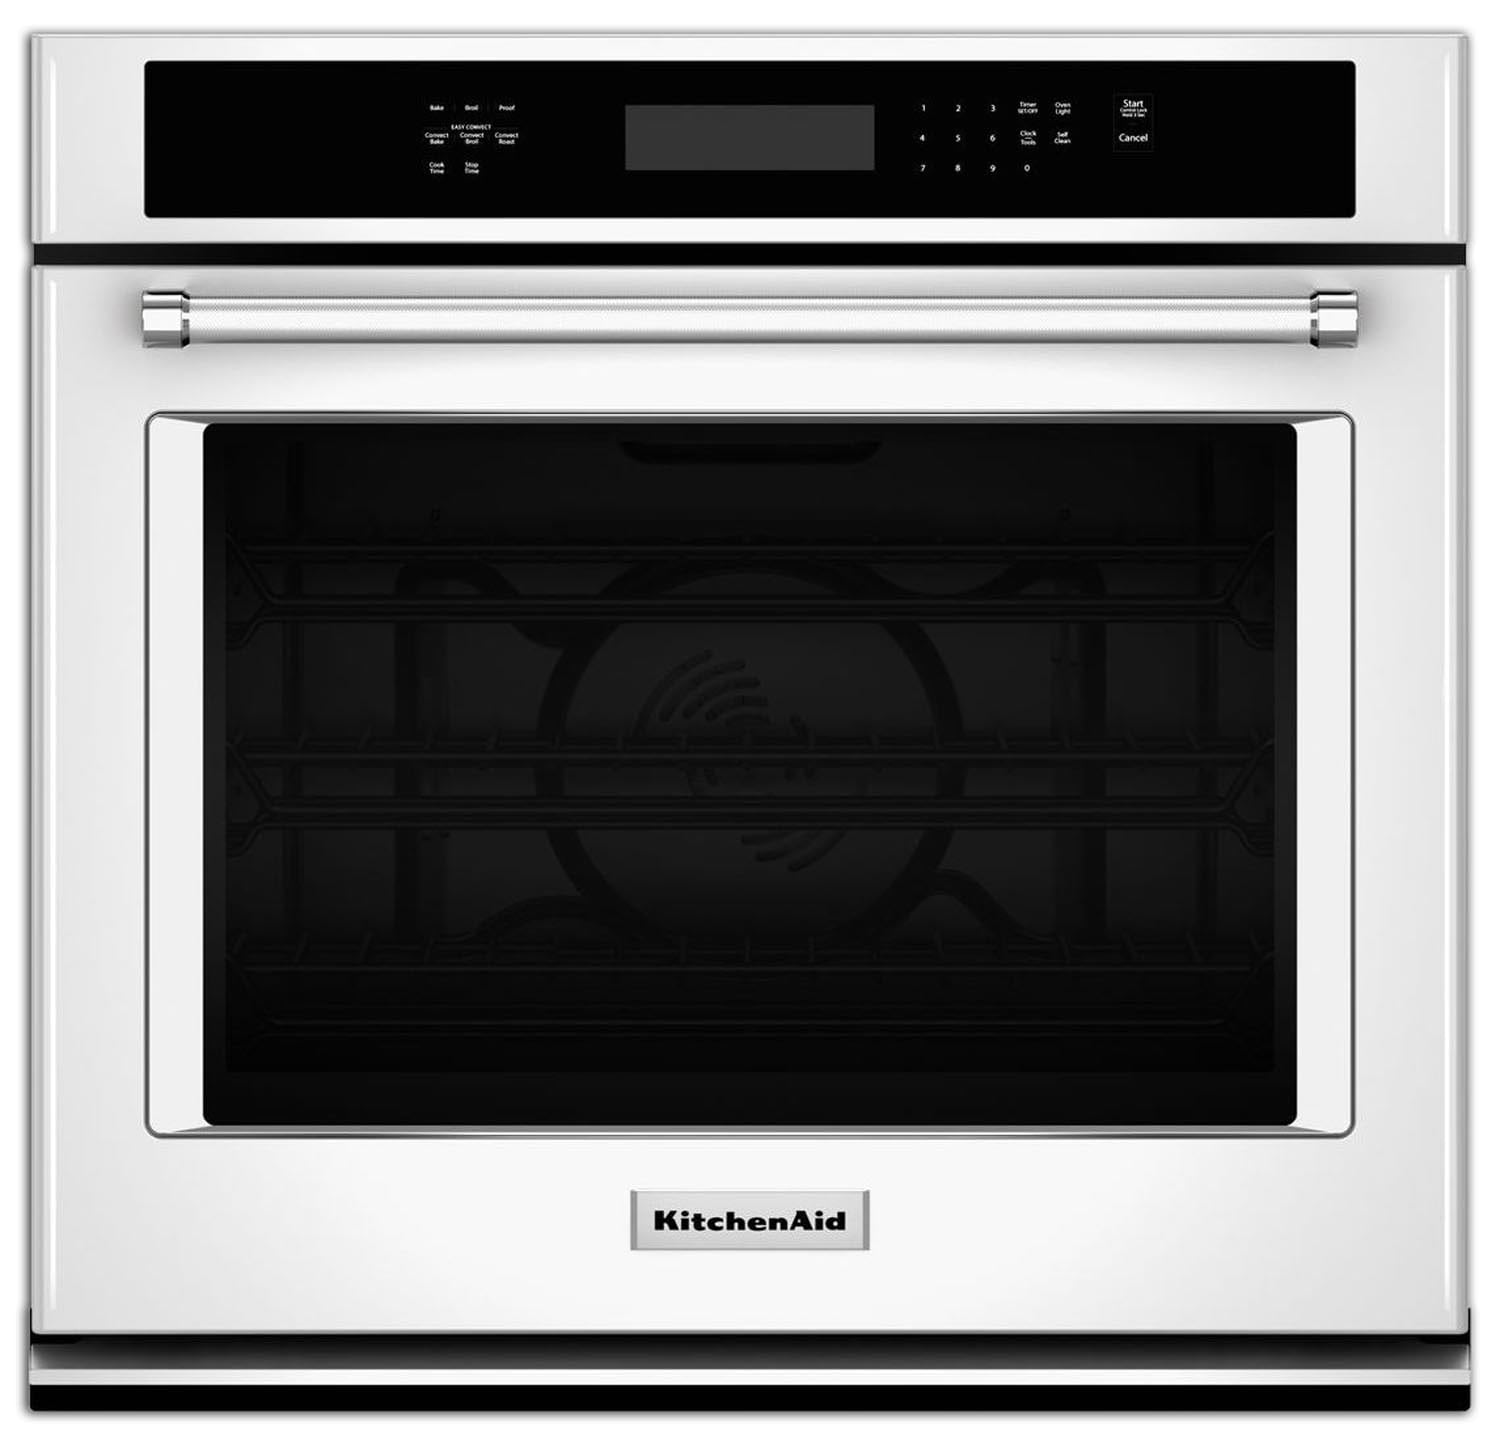 Cooking Products - KitchenAid White Convection Wall Oven (4.3 Cu. Ft.) - KOSE507EWH